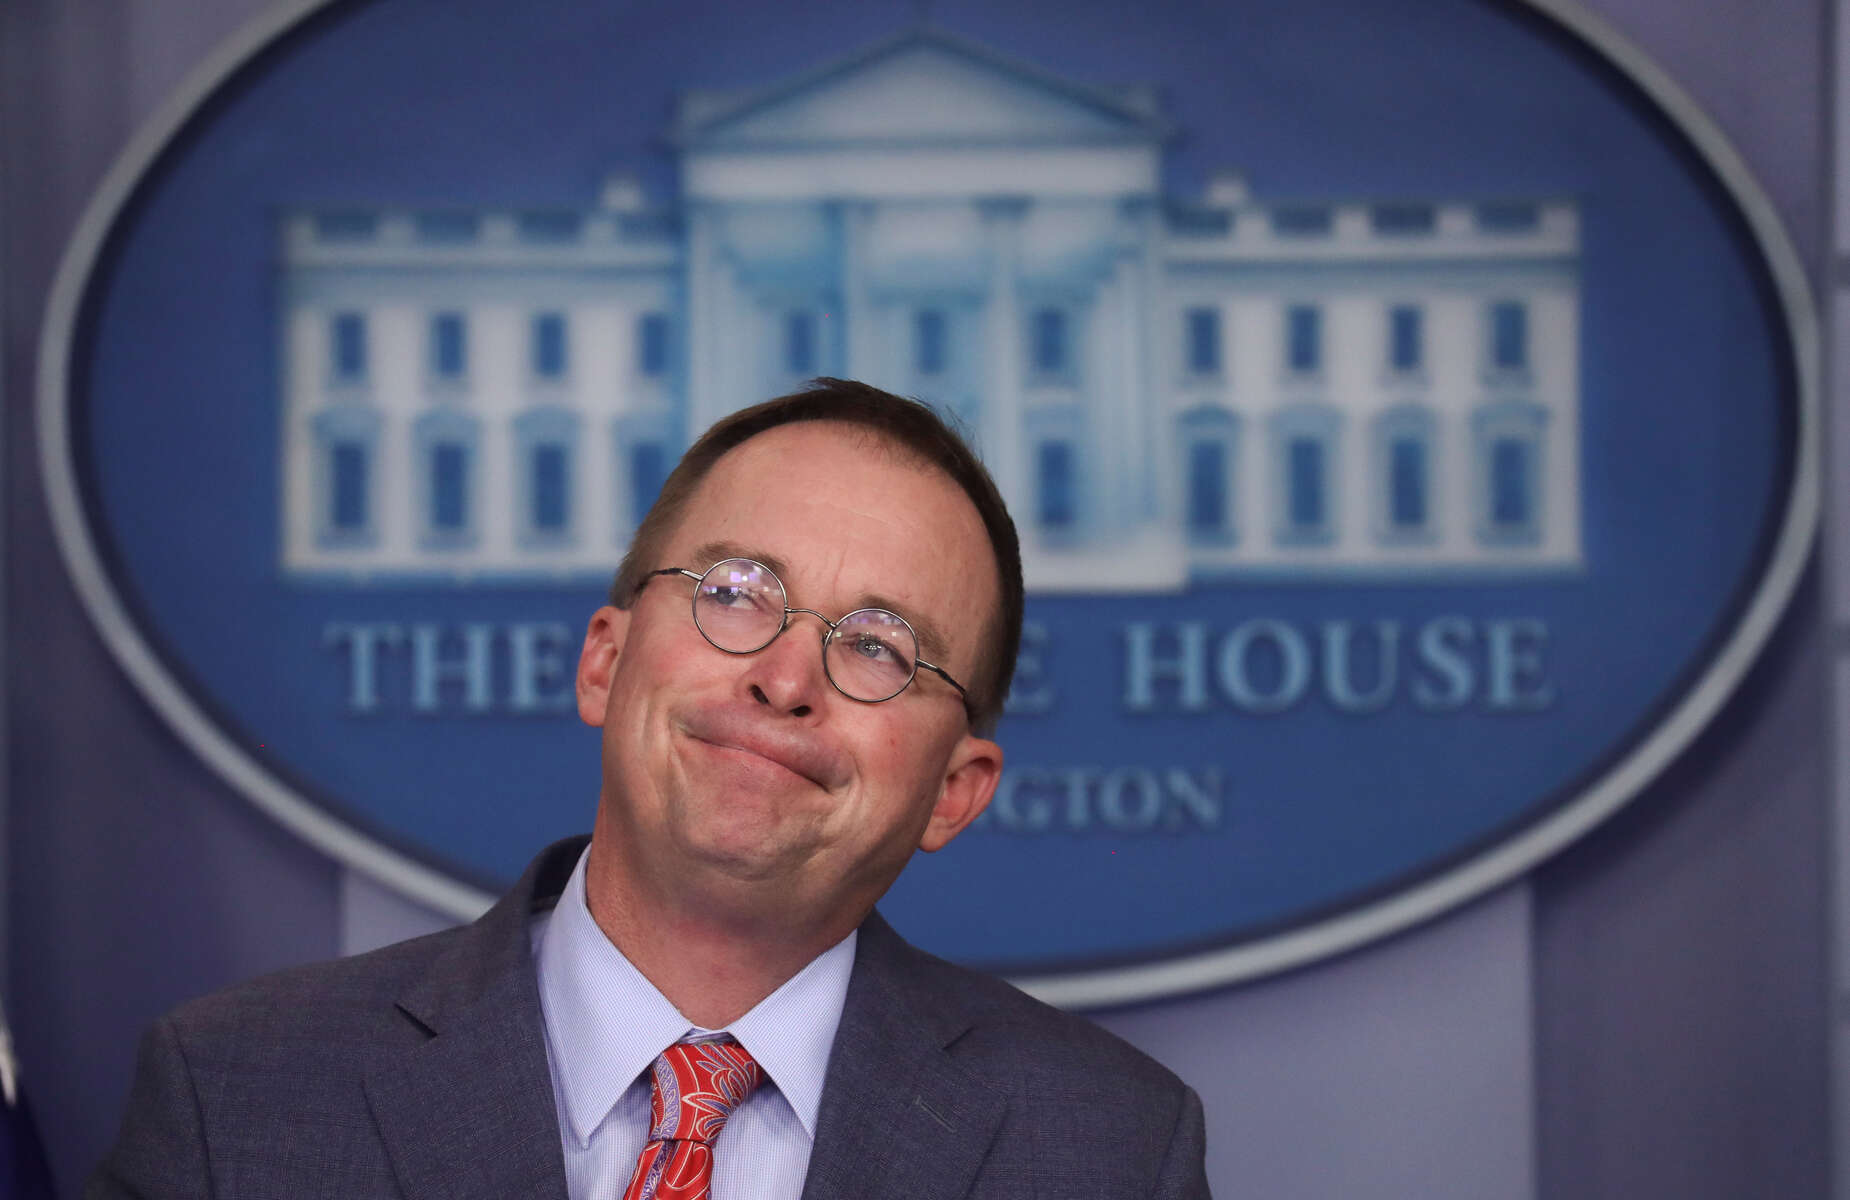 Acting White House Chief of Staff Mick Mulvaney addresses reporters during a news briefing at the White House in Washington, U.S., October 17, 2019. The news briefing shook Washington after Mulvaney admitted there had been a {quote}quid pro quo{quote} with the president and the Ukrainian president. {quote}We do it all the time, get over it{quote} Mulvaney declared. He later tried to walk his statements back.